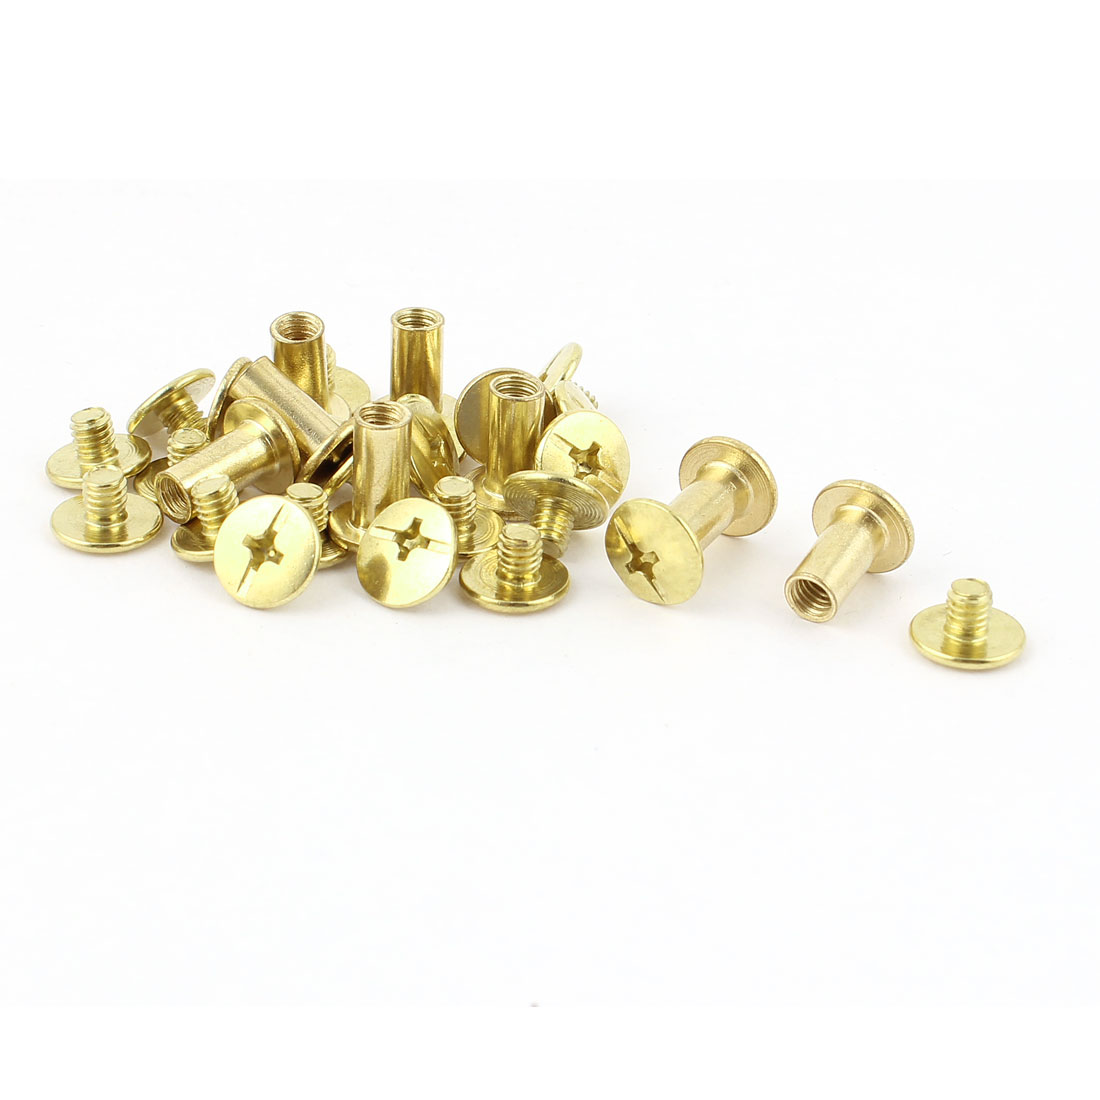 10pcs 5mmx10mm Brass Plated Binding Chicago Screw Post for Album Scrapbook